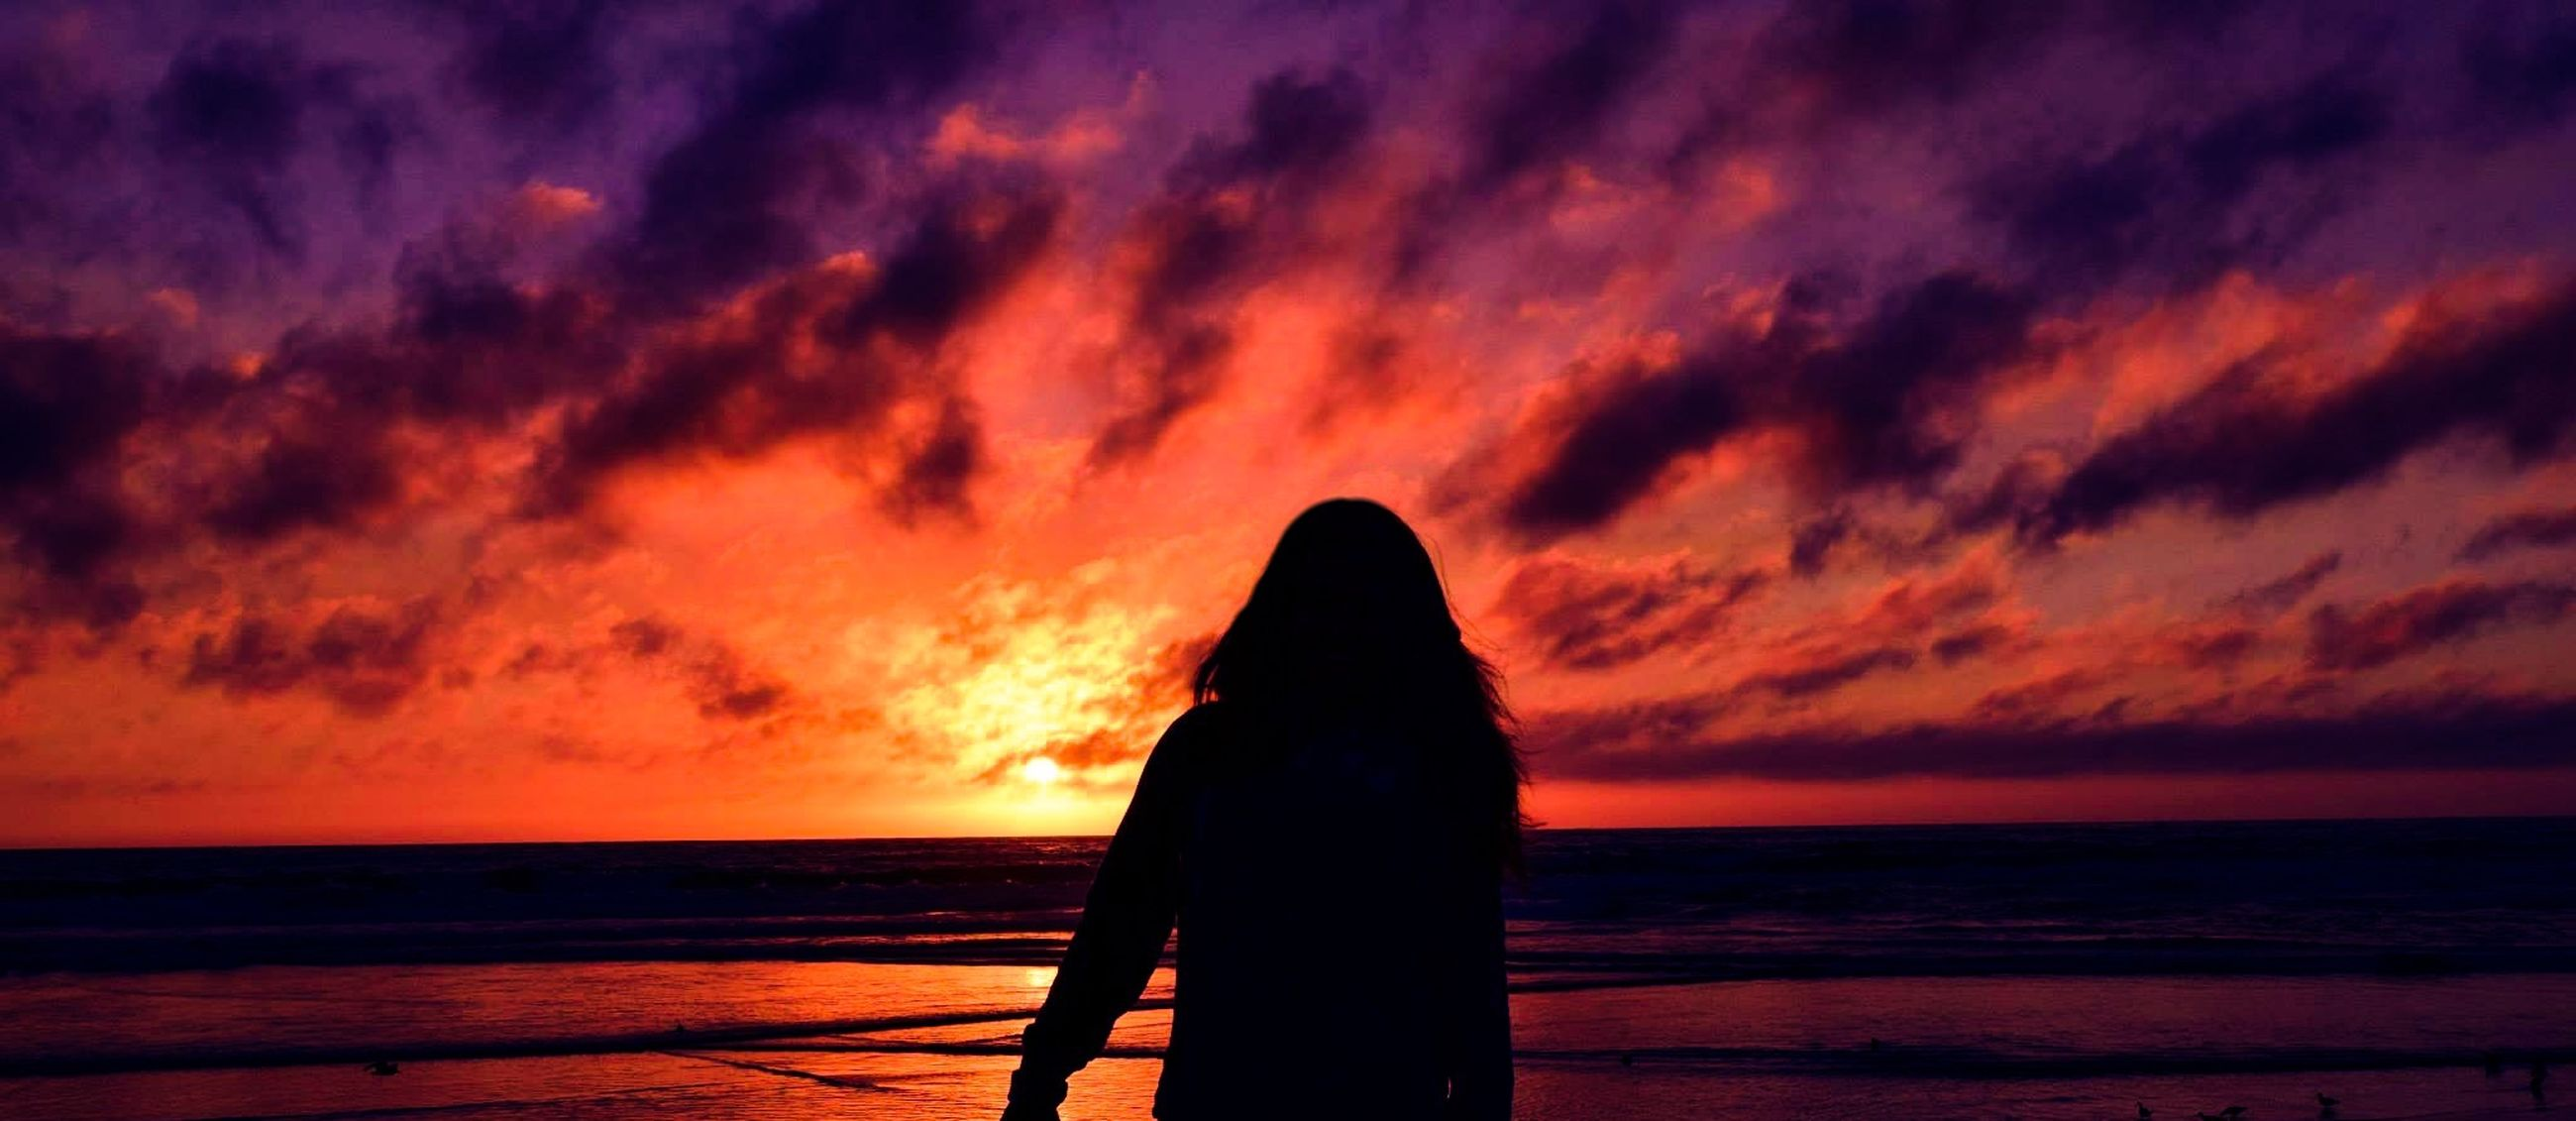 sunset, sea, horizon over water, sky, orange color, scenics, beauty in nature, tranquility, water, tranquil scene, cloud - sky, silhouette, idyllic, nature, cloud, beach, dramatic sky, cloudy, shore, outdoors